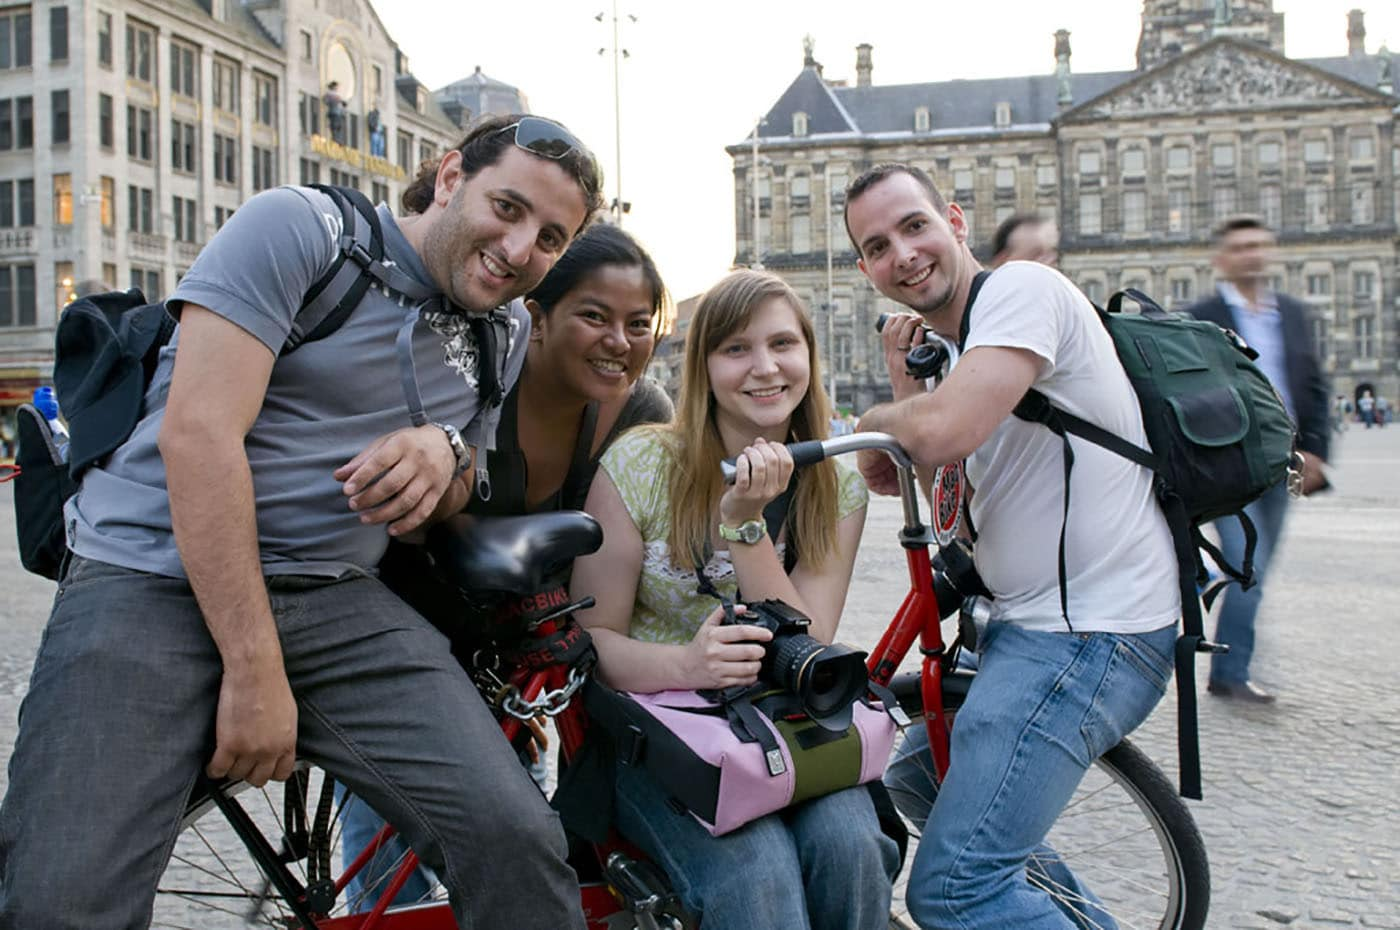 Photographing Amsterdam with new friends.